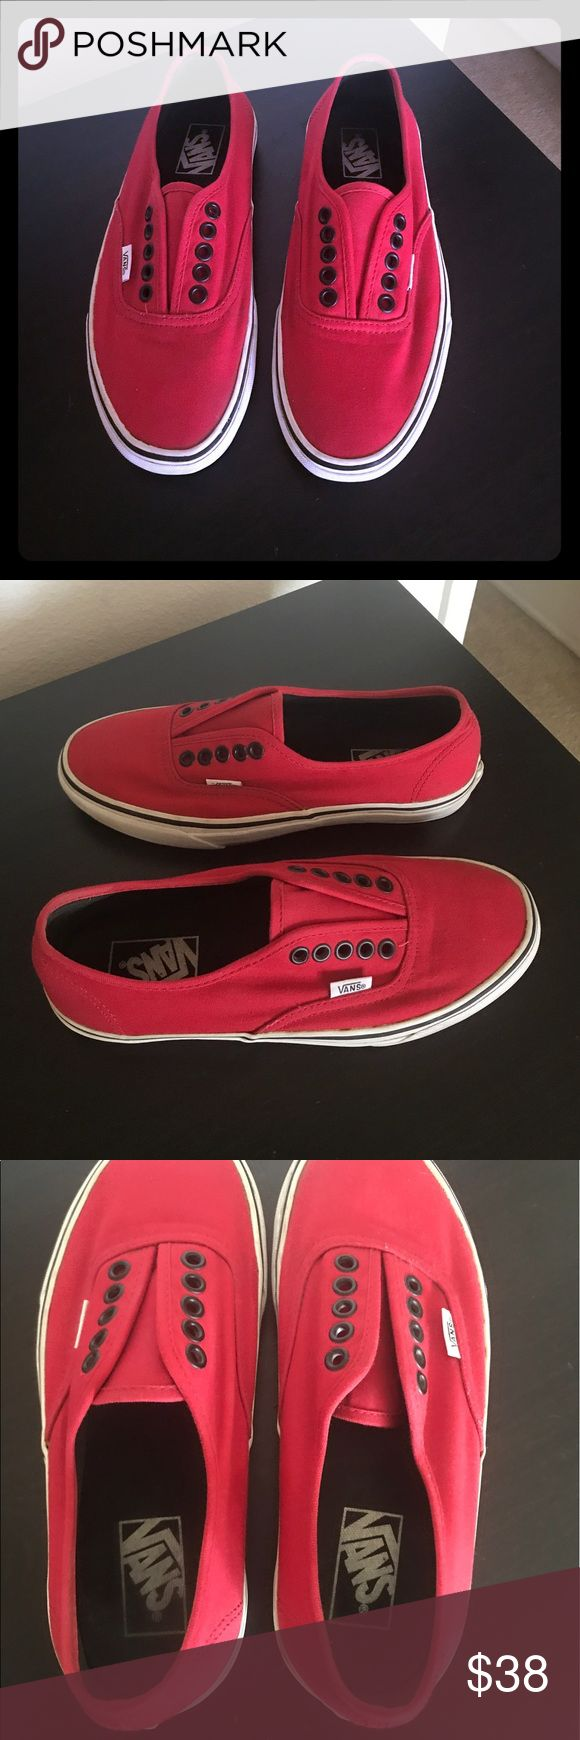 Vans Authentic Red Classic Vans, men's size 6.5, Woman's size 8, the canvas is clean, I always wore these as slip-ons no shoe laces included, no stains, usually wear on the bottom and white trim could use a little cleaning. ⭐️ If making an offer use the offer button! Vans Shoes